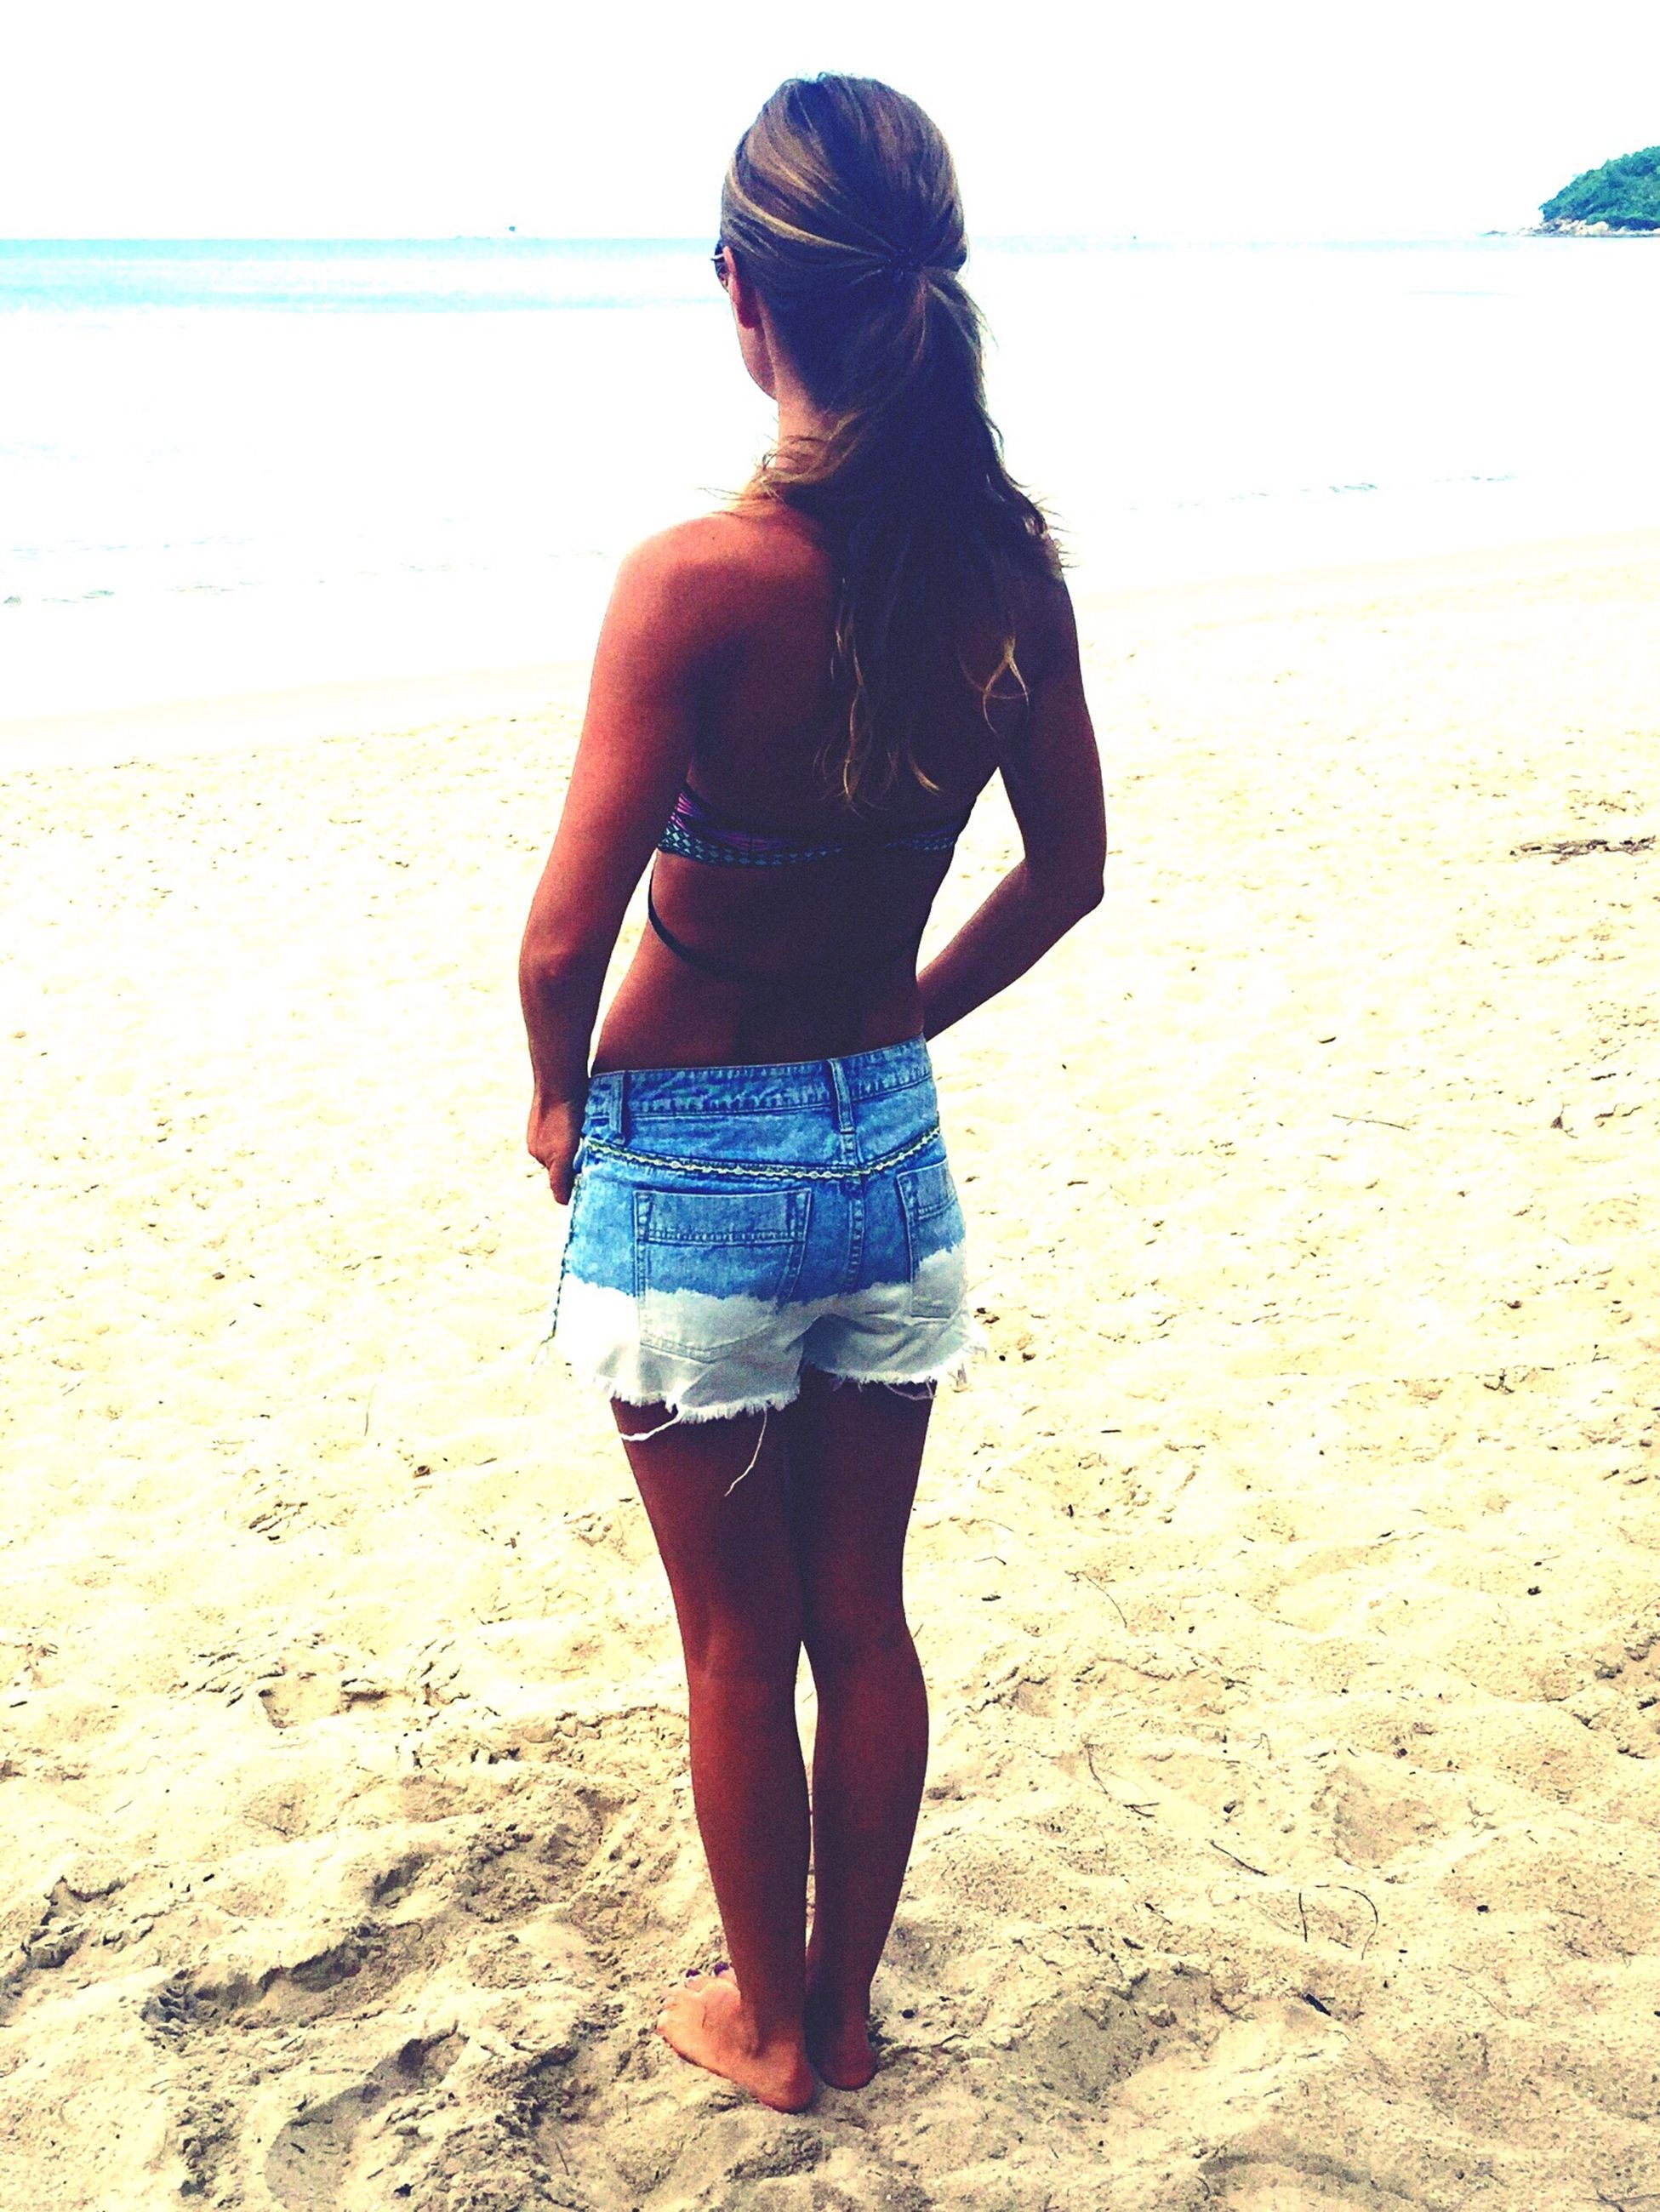 beach, sand, sea, shore, young adult, lifestyles, full length, leisure activity, casual clothing, standing, water, young women, person, horizon over water, vacations, rear view, long hair, sunglasses